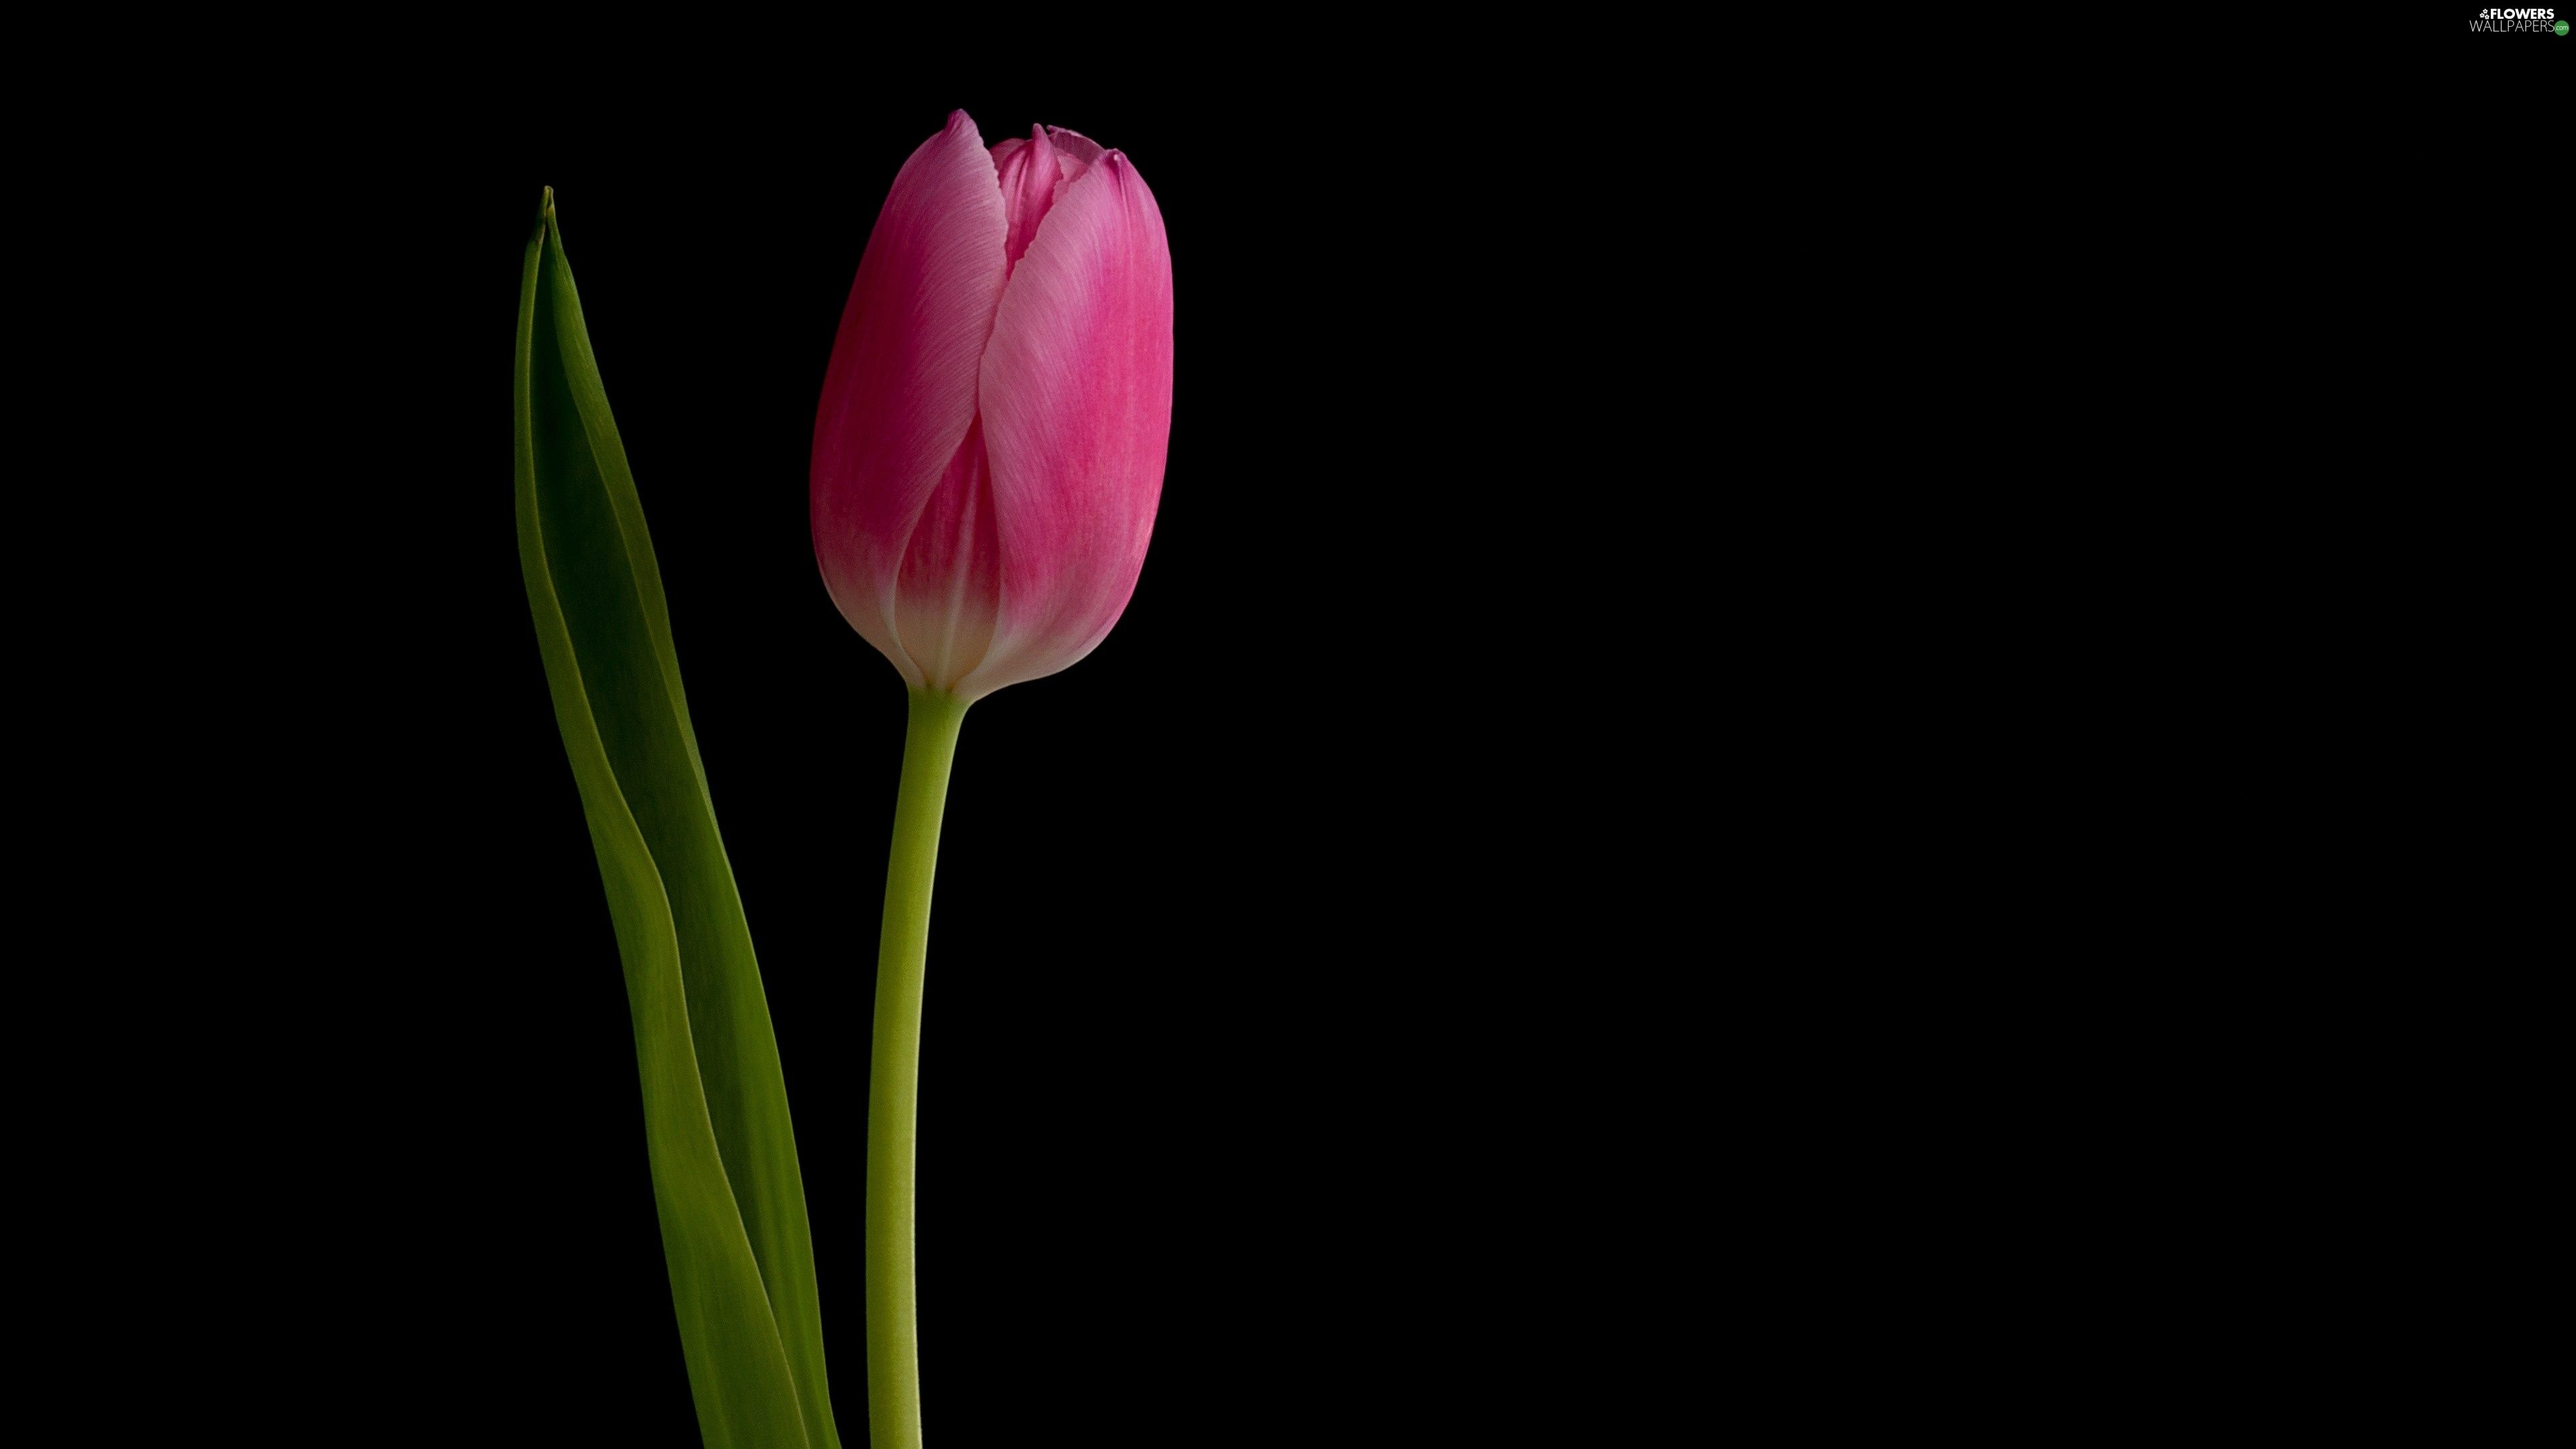 Tulip Flowers Hd Wallpapers Free Download Tulips Flowers Tulips Black Tulips